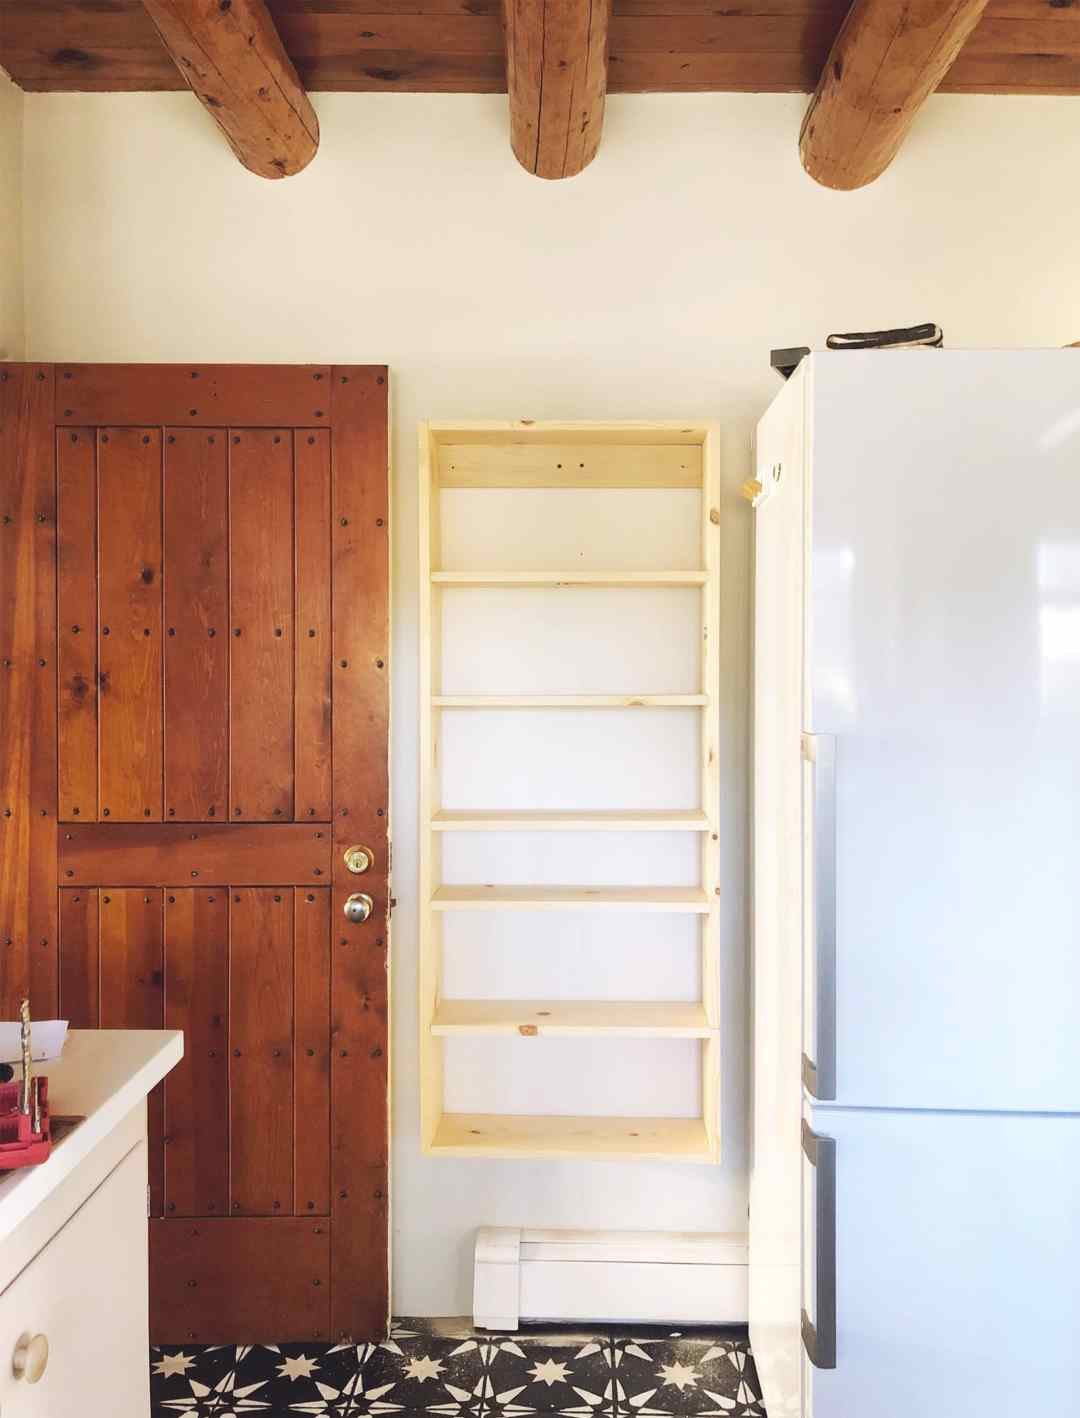 Kitchen - open wall shelving